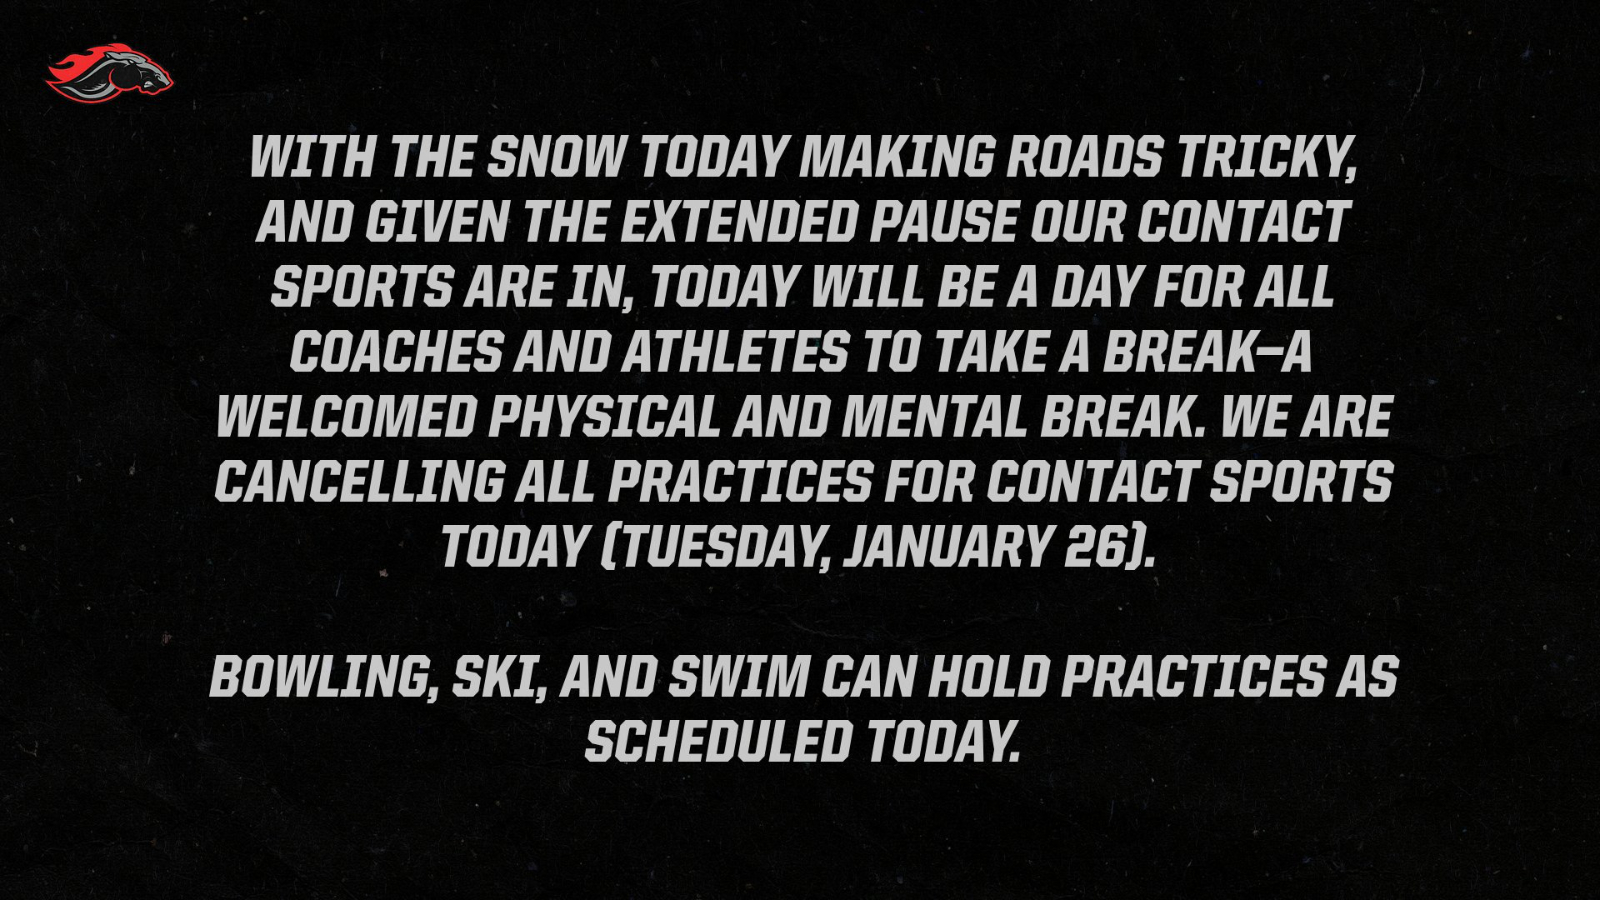 Contact Sport Practices Cancelled For Today, 1/26